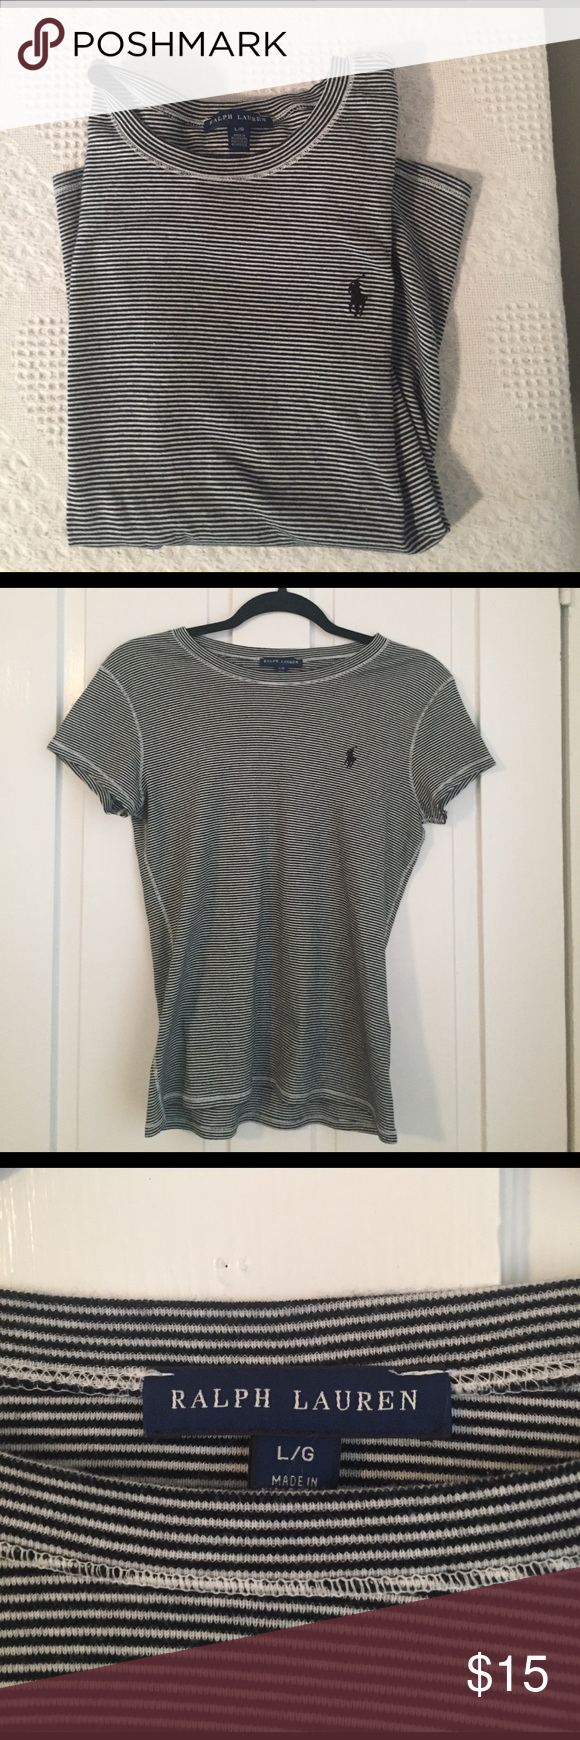 Ralph Lauren Striped Top Black and white striped top from Ralph Lauren. This is short sleeved and great condition. It is also not cropped. Size large. Ralph Lauren Tops Tees - Short Sleeve